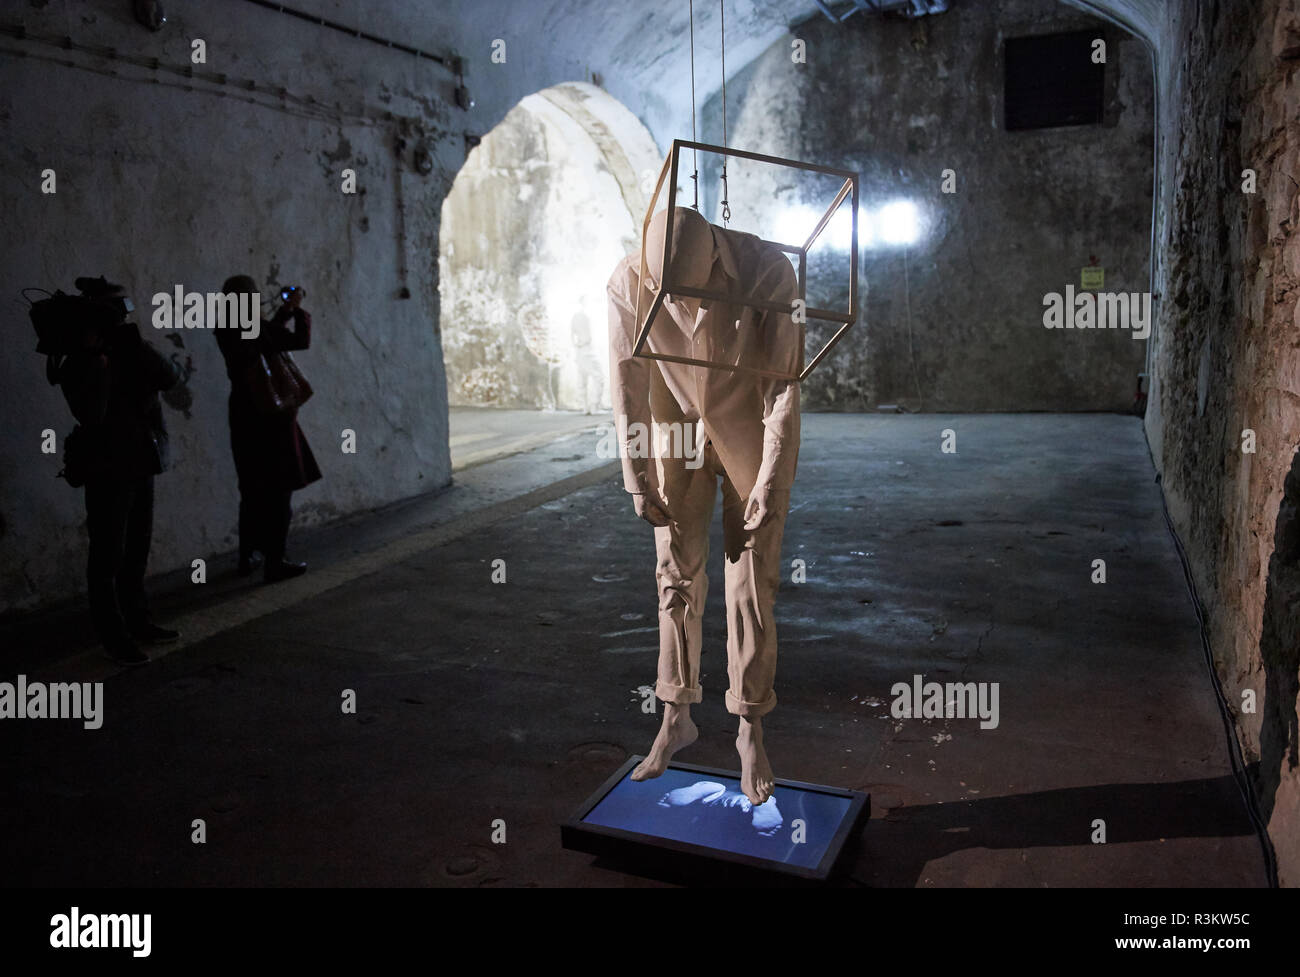 Unna, Germany. 23rd Nov, 2018. The work 'Reflection Exercices' by the artist Bernardí Roig can be seen at the Zentrum für Lichtkunst during a press tour. Starting Saturday, the museum will be showing numerous works by the Spanish multimedia artist. Characteristic of the contemporary artist's work are his white, life-size sculptures made of polyester resin, which he combines with fluorescent tubes. Five of these works form the focus of the show, which runs until 14 March 2019. Credit: Bernd Thissen/dpa/Alamy Live News - Stock Image